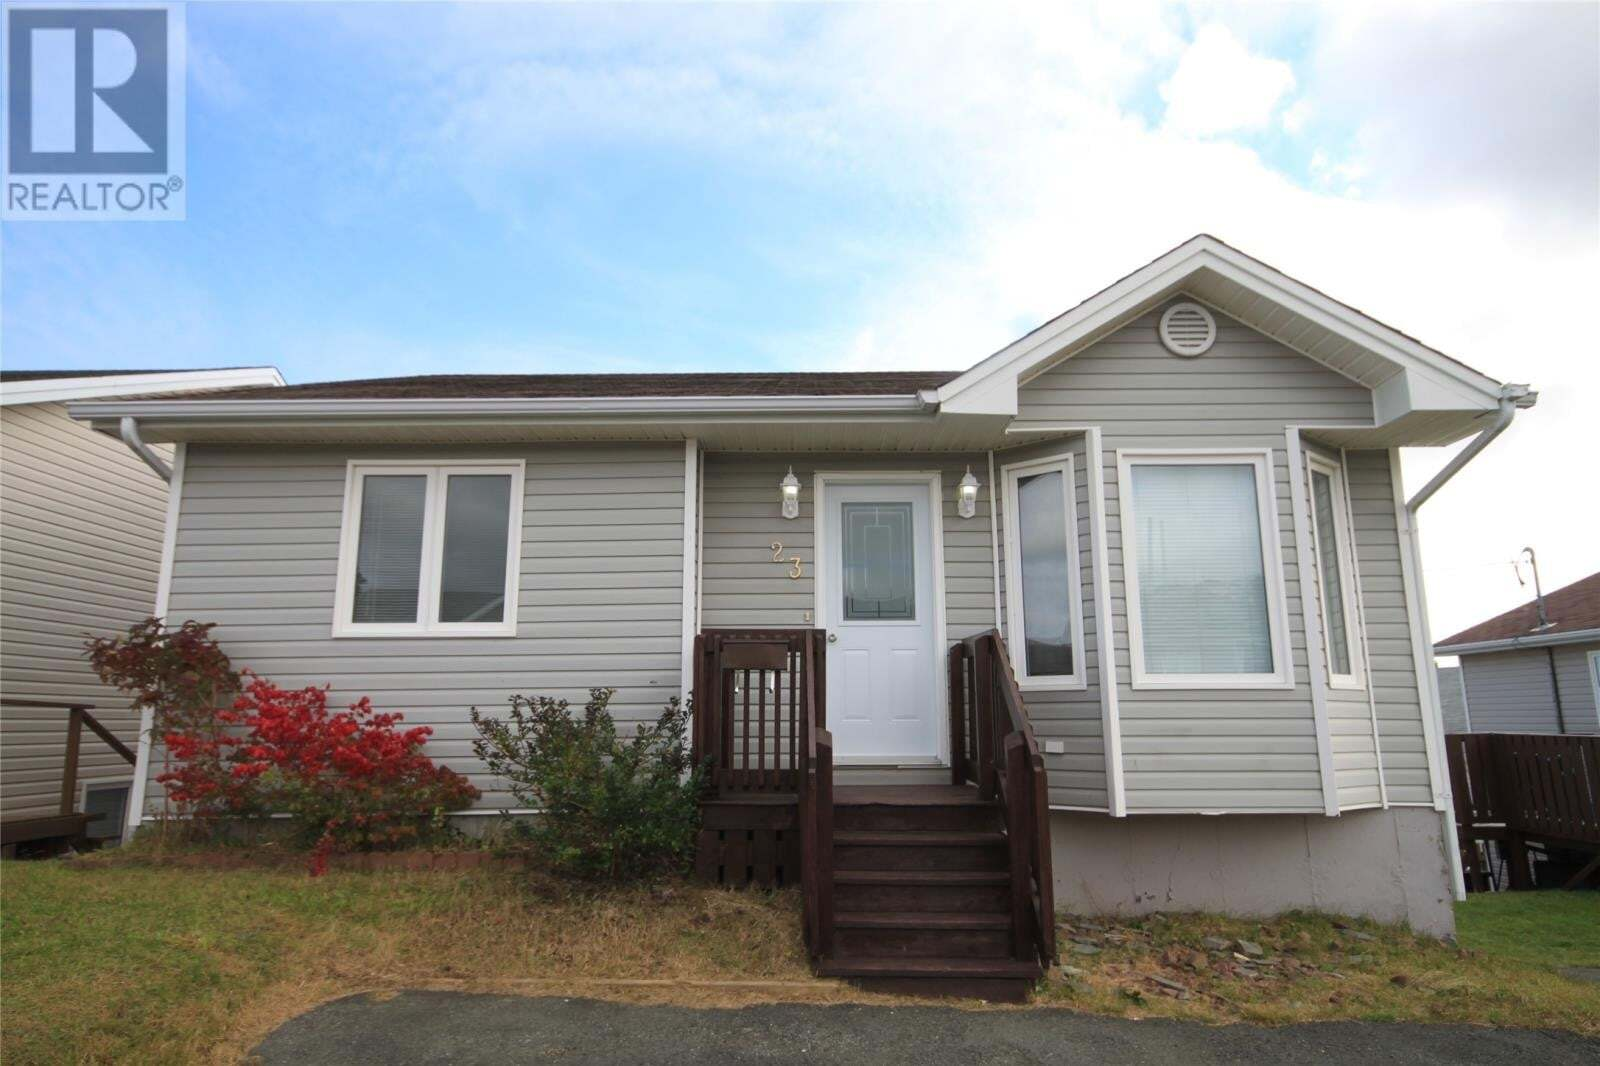 House for sale at 23 Kelland Cres St. John's Newfoundland - MLS: 1222464